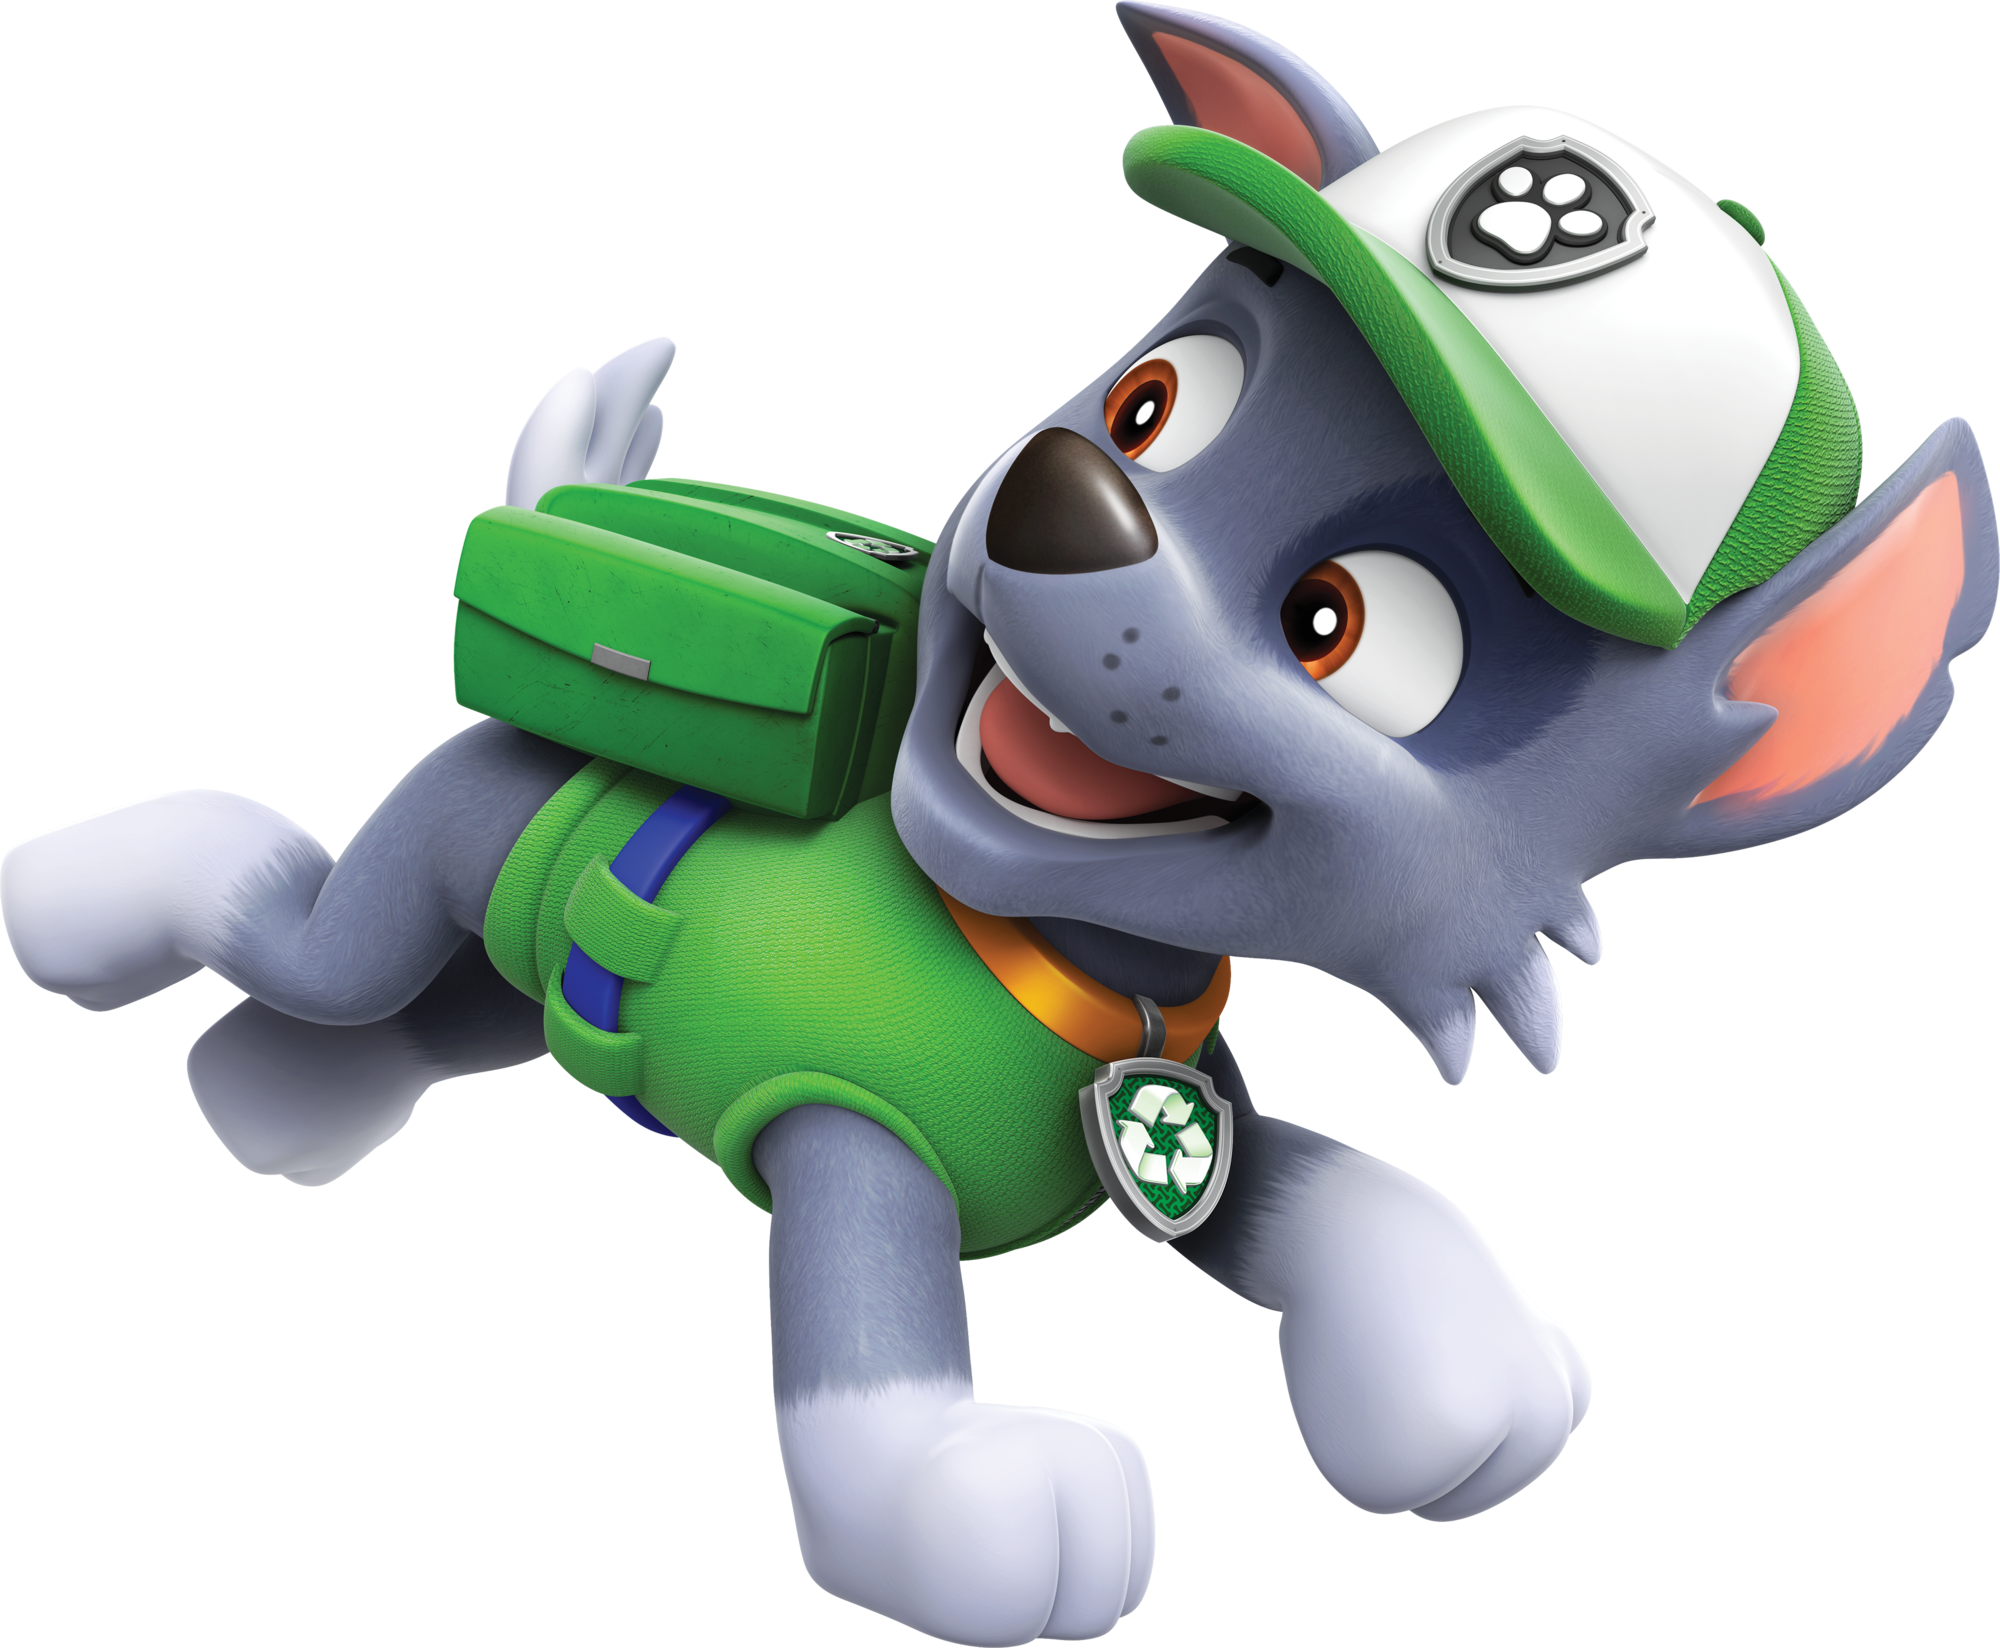 Coloring Pages Paw Patrol Rubble : Image paw patrol rocky running paw patrol fanon wiki